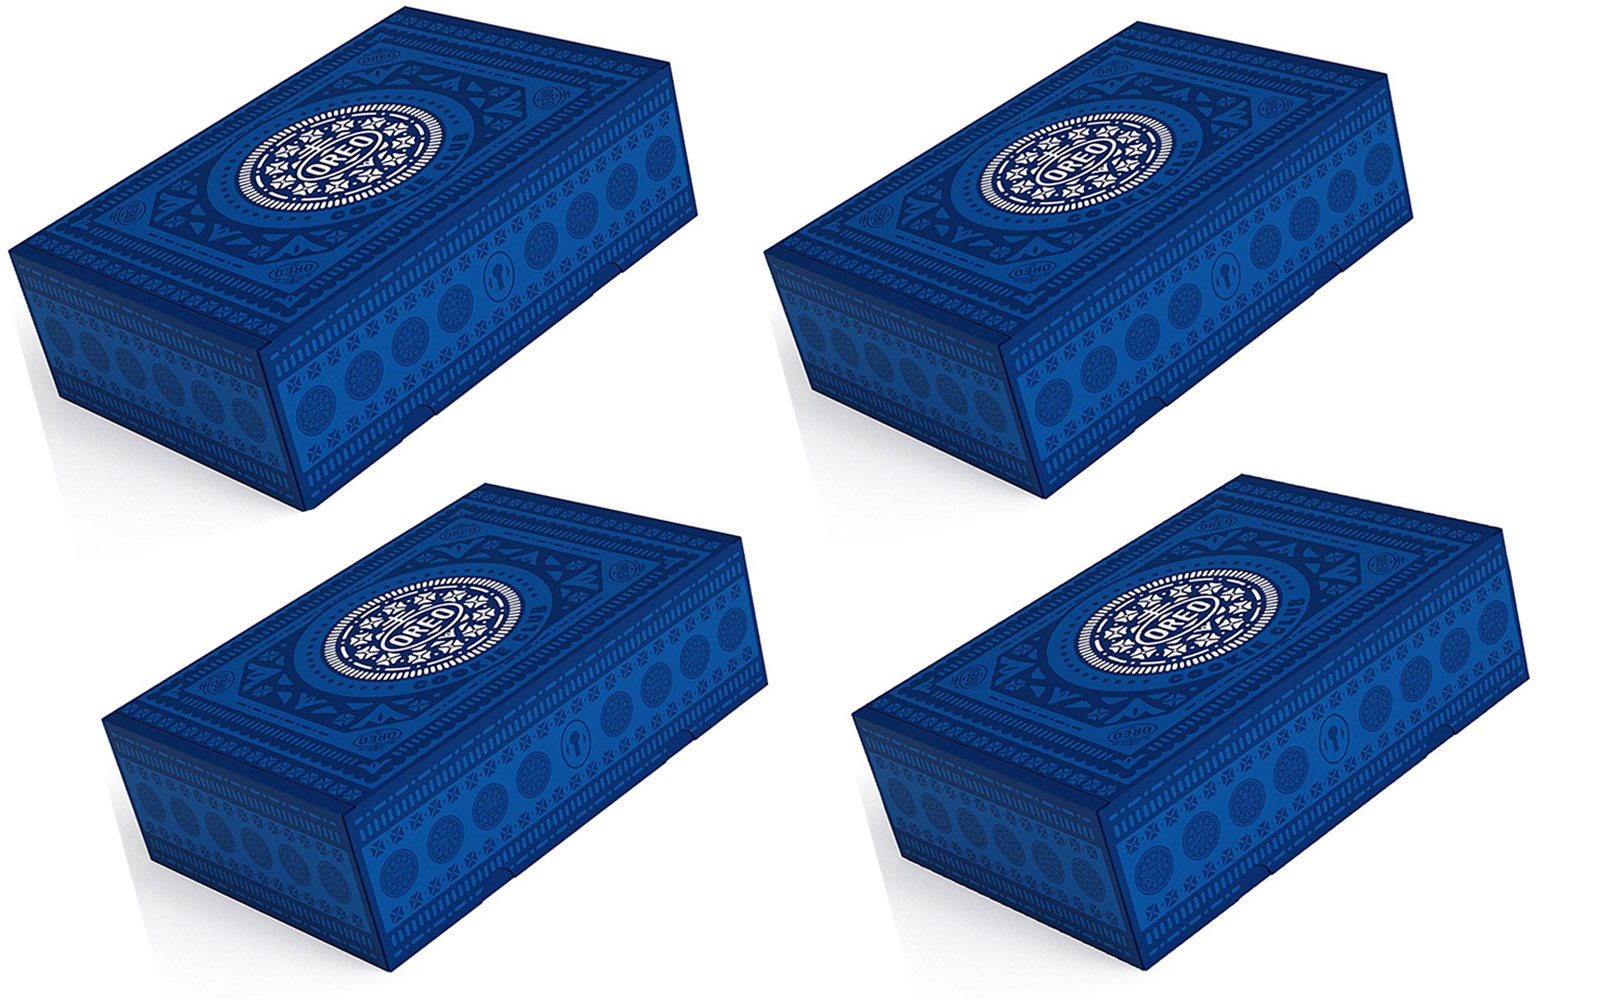 OREO Cookie Club Subscription Box, OREO of the Month Gift